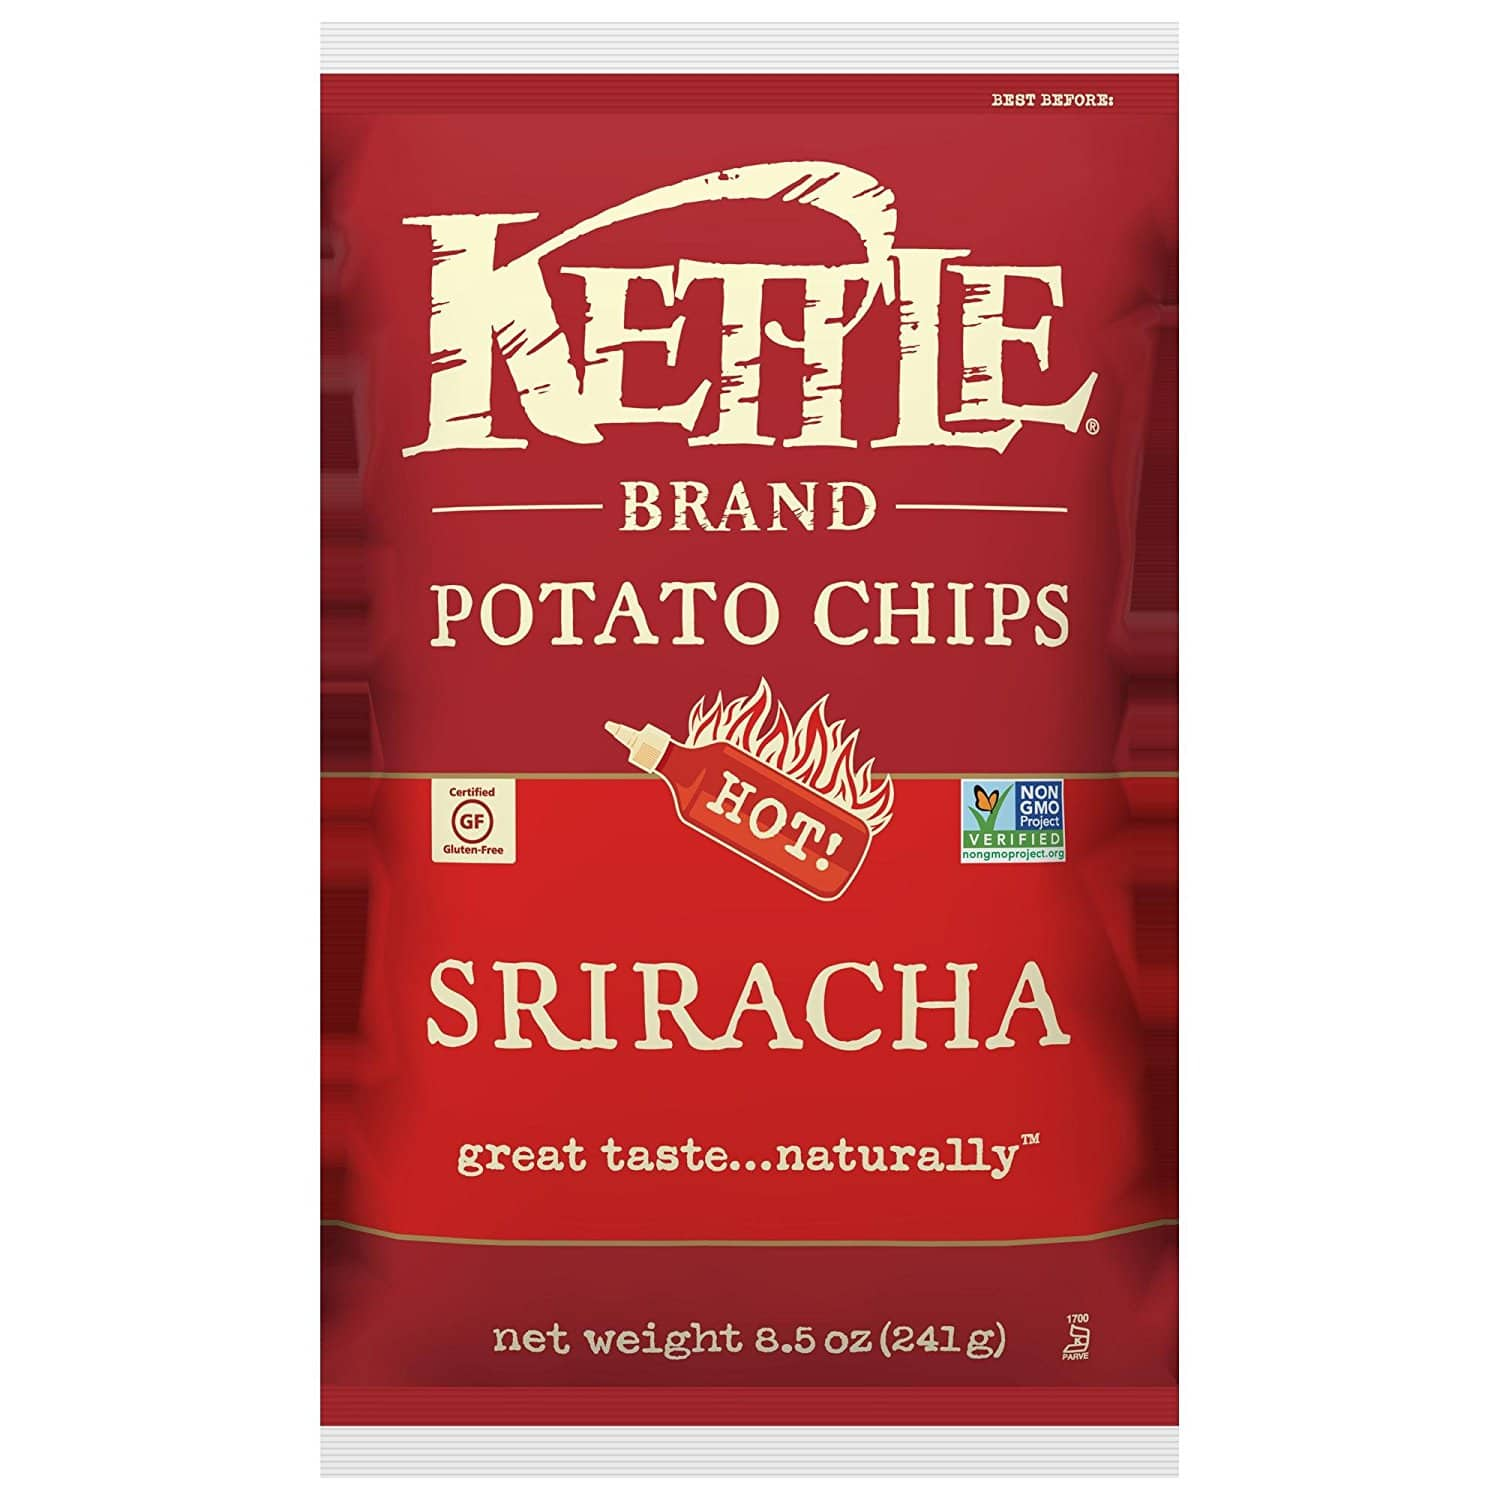 Kettle Brand Potato Chips, Sriracha, 8.5-Ounce Bags (Pack of 12) for $24.73 or lower with S&S @ Amazon